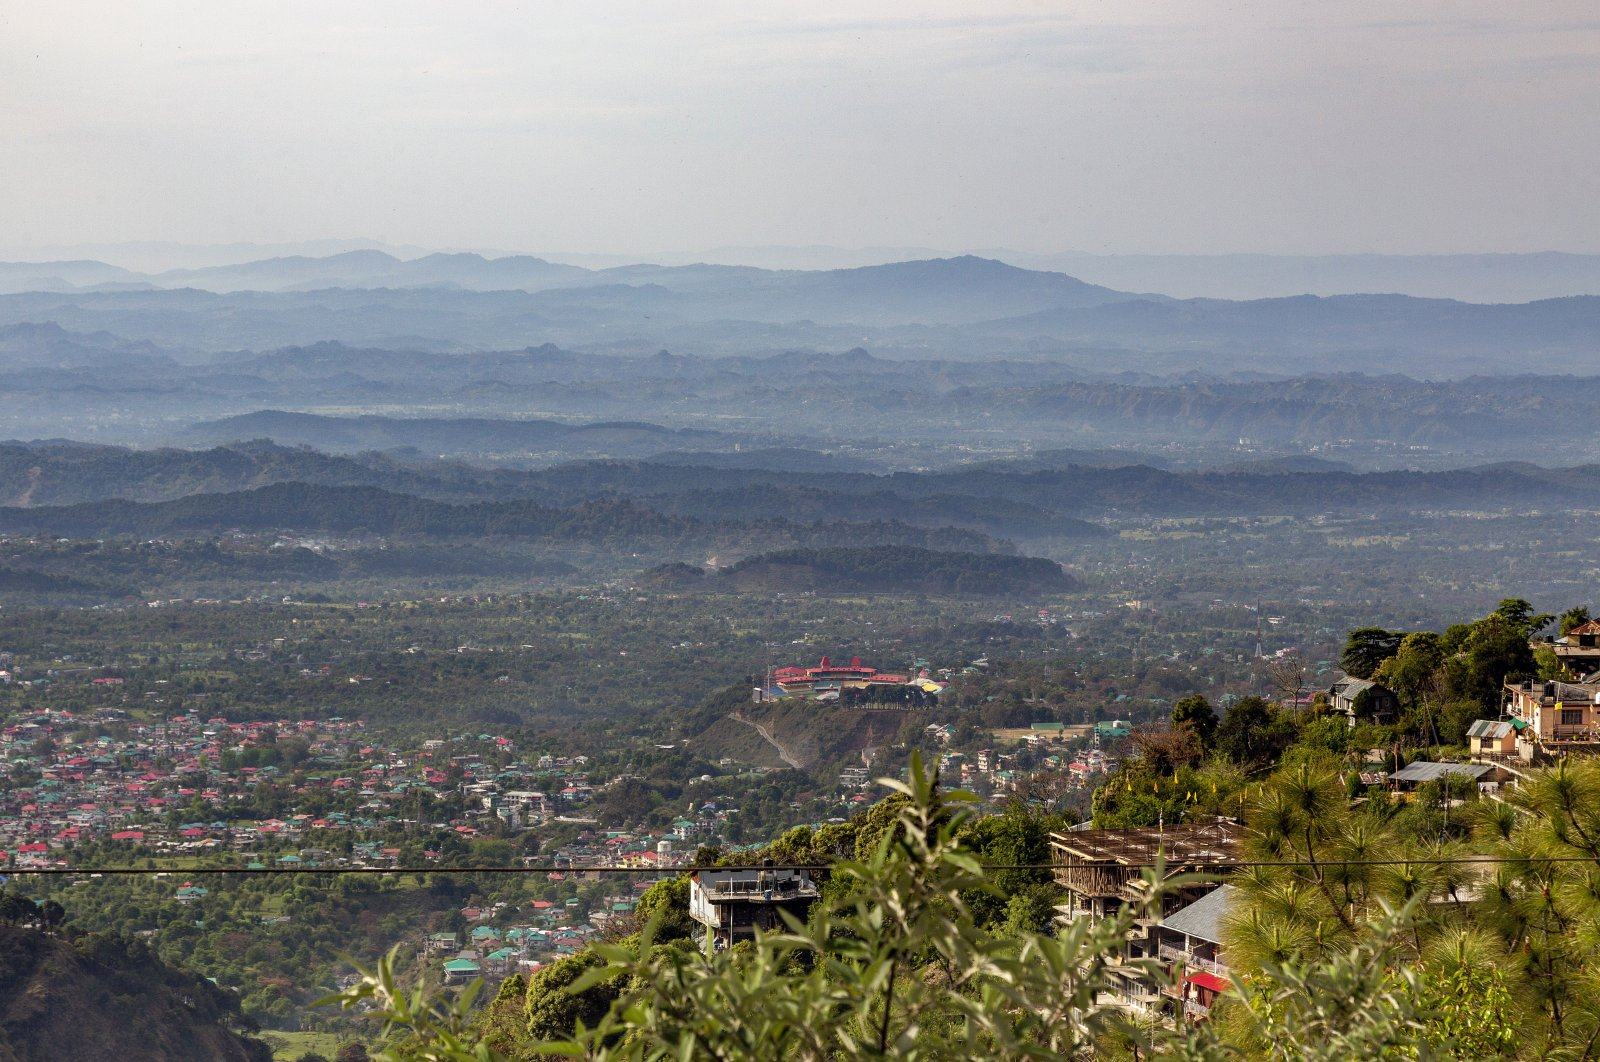 In this Friday, April 10, 2020, photo, Himachal Pradesh Cricket Association and the distant hills are clearly visible during lockdown to control the spread of the coronavirus in Dharmsala, India. (AP Photo)